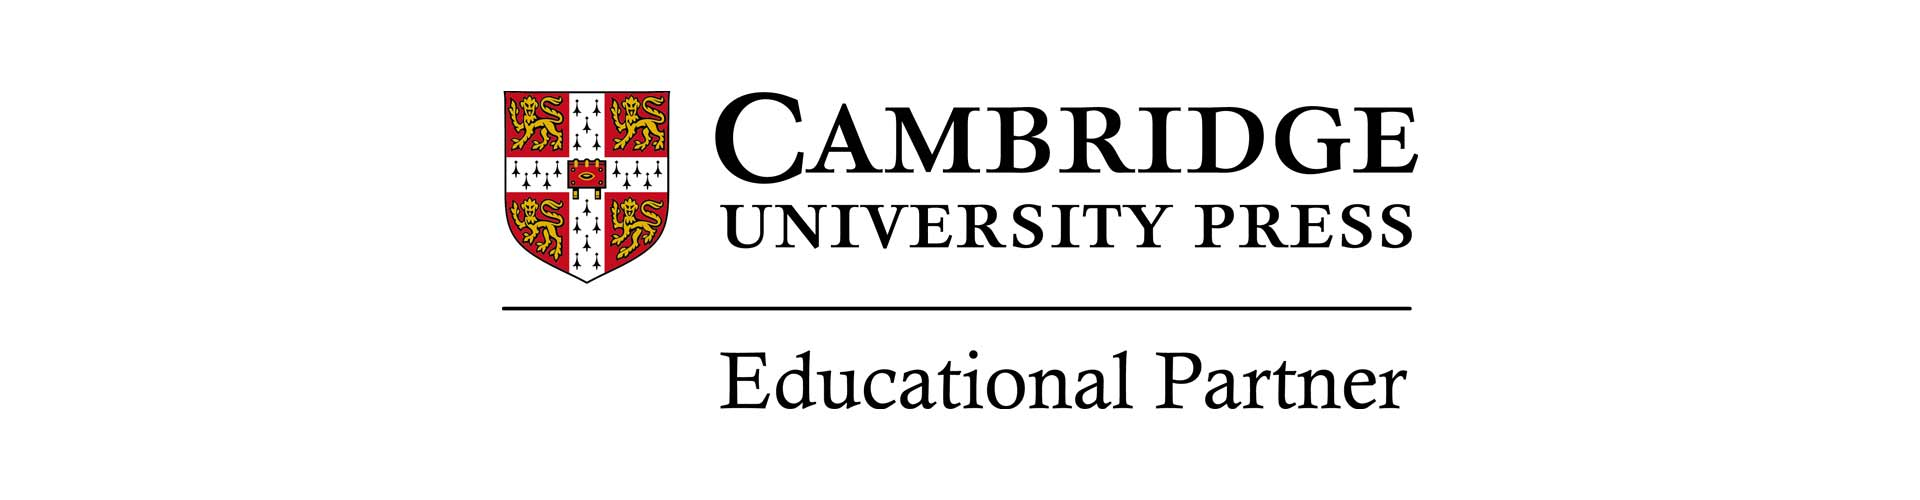 Cambridge University Press Educational Partner - Colegio JRJ